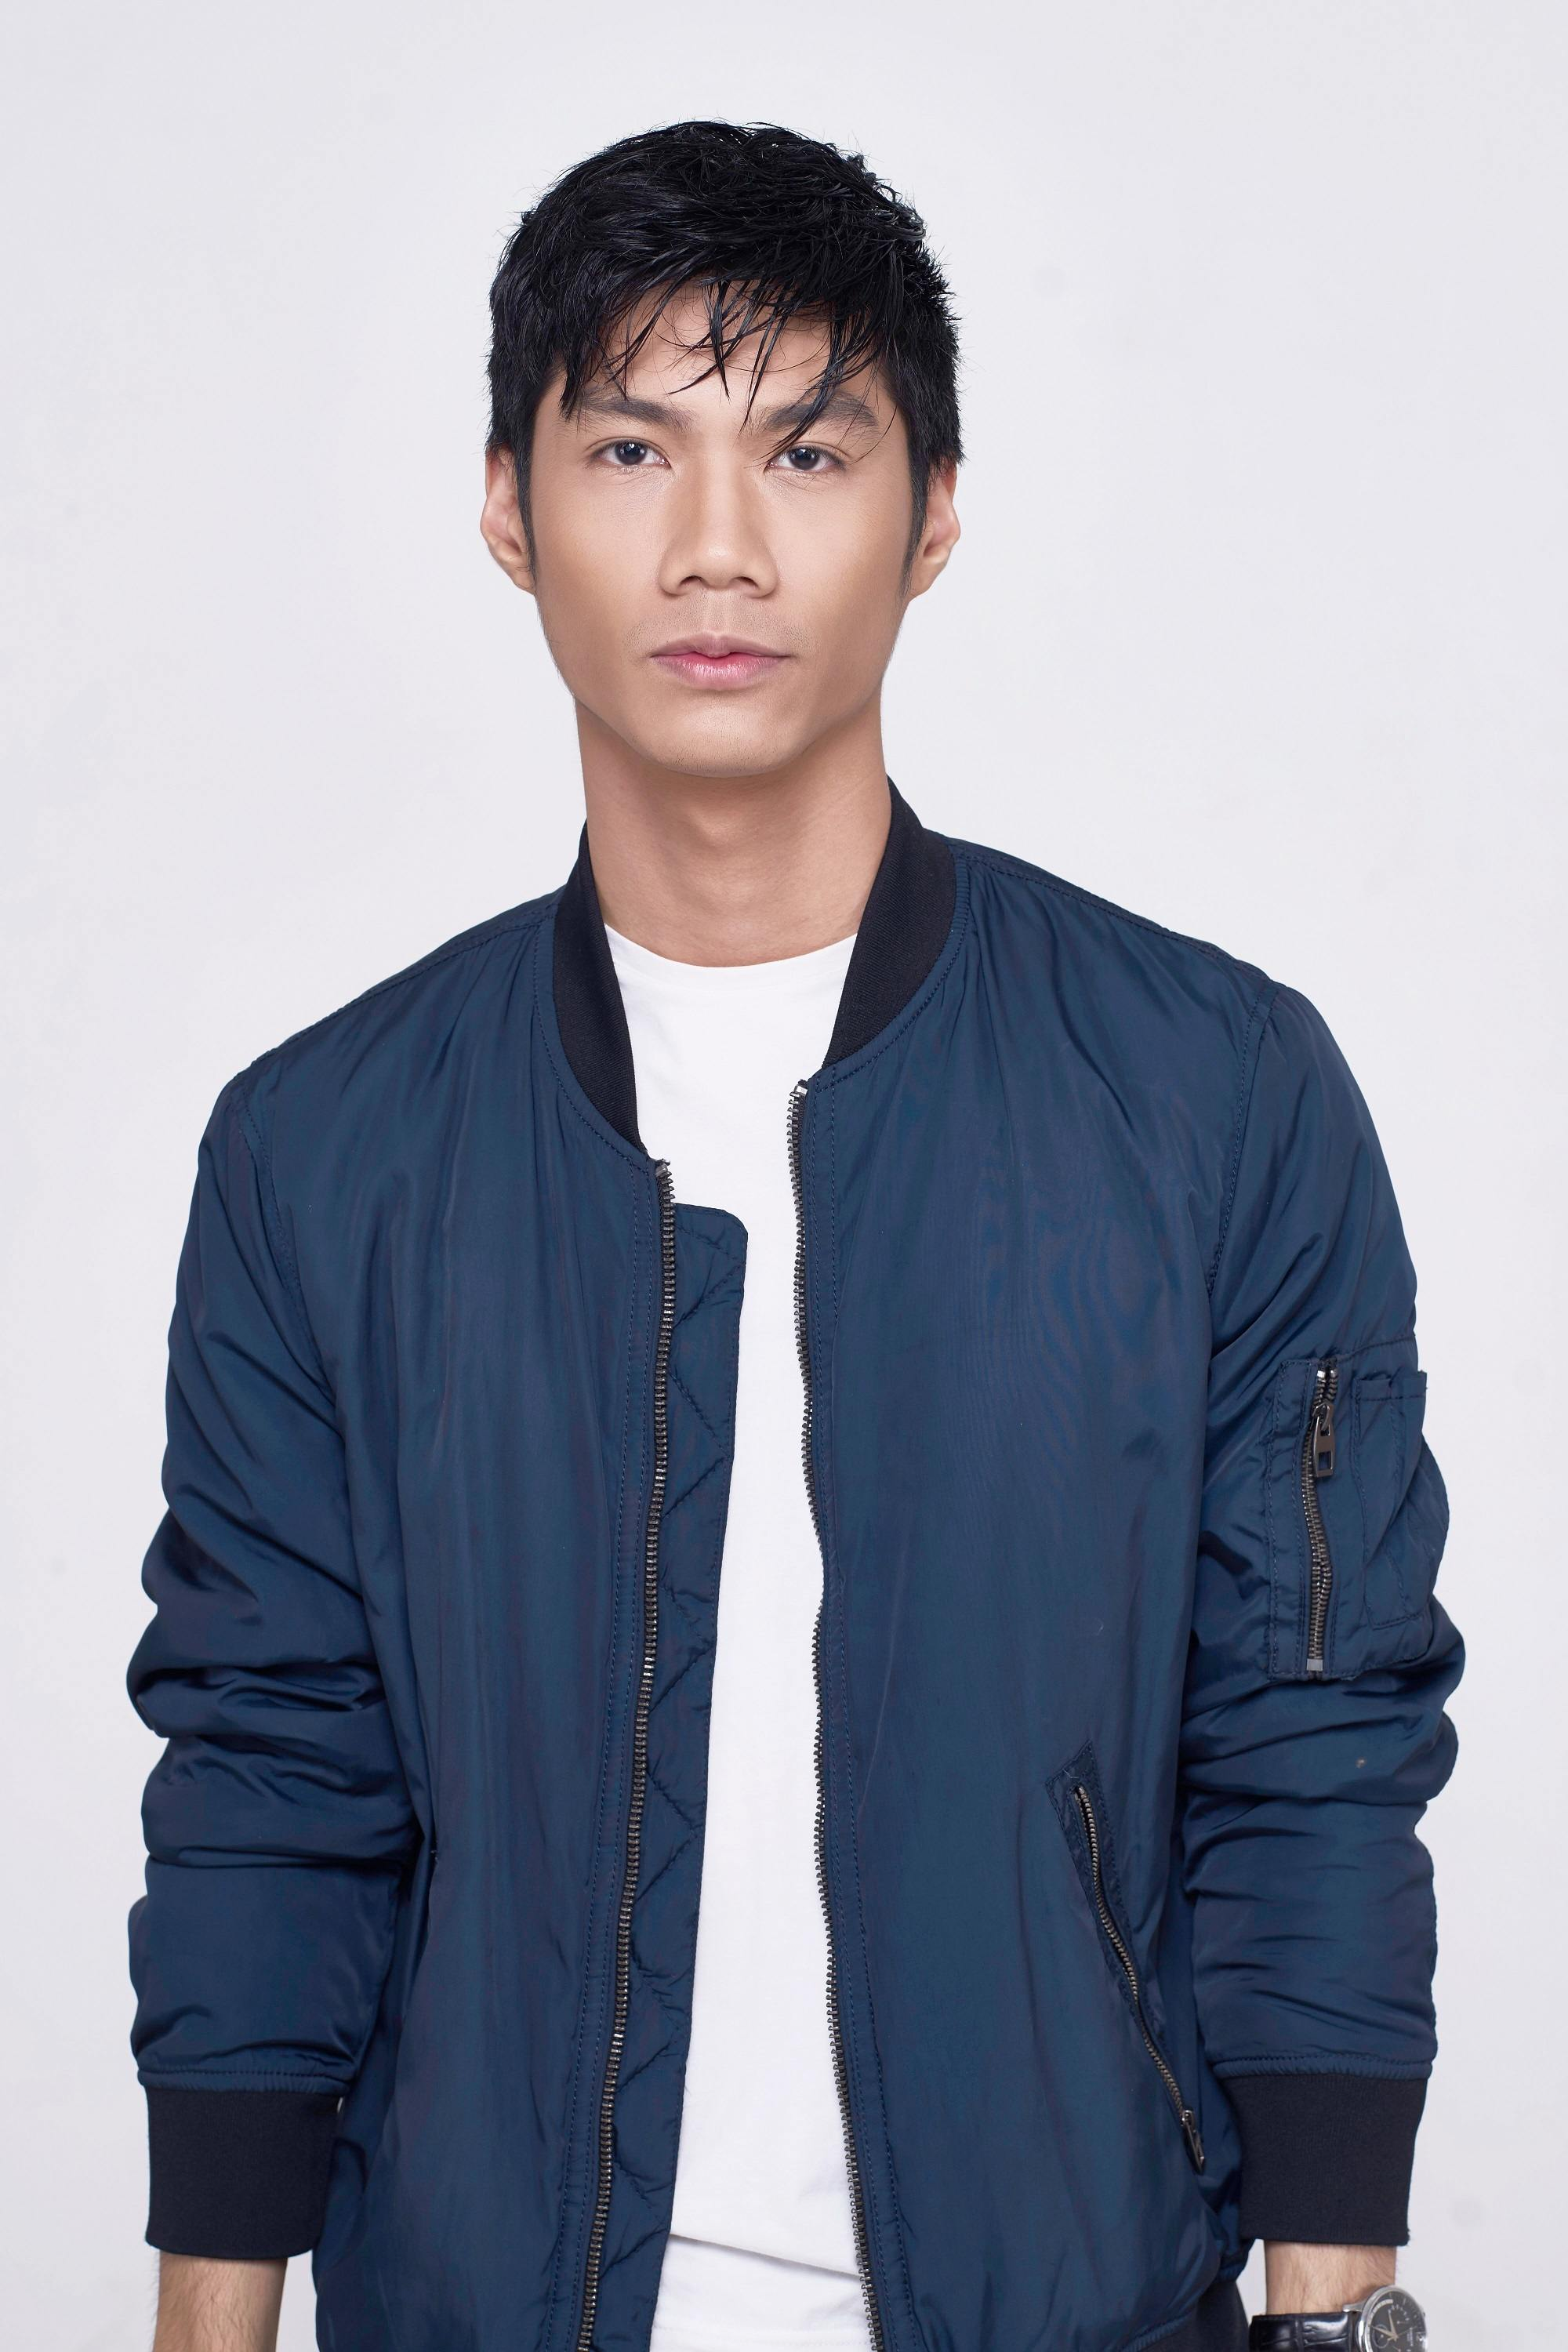 How to style short hair for men: Asian man with short black hair wearing a blue jacket and white shirt